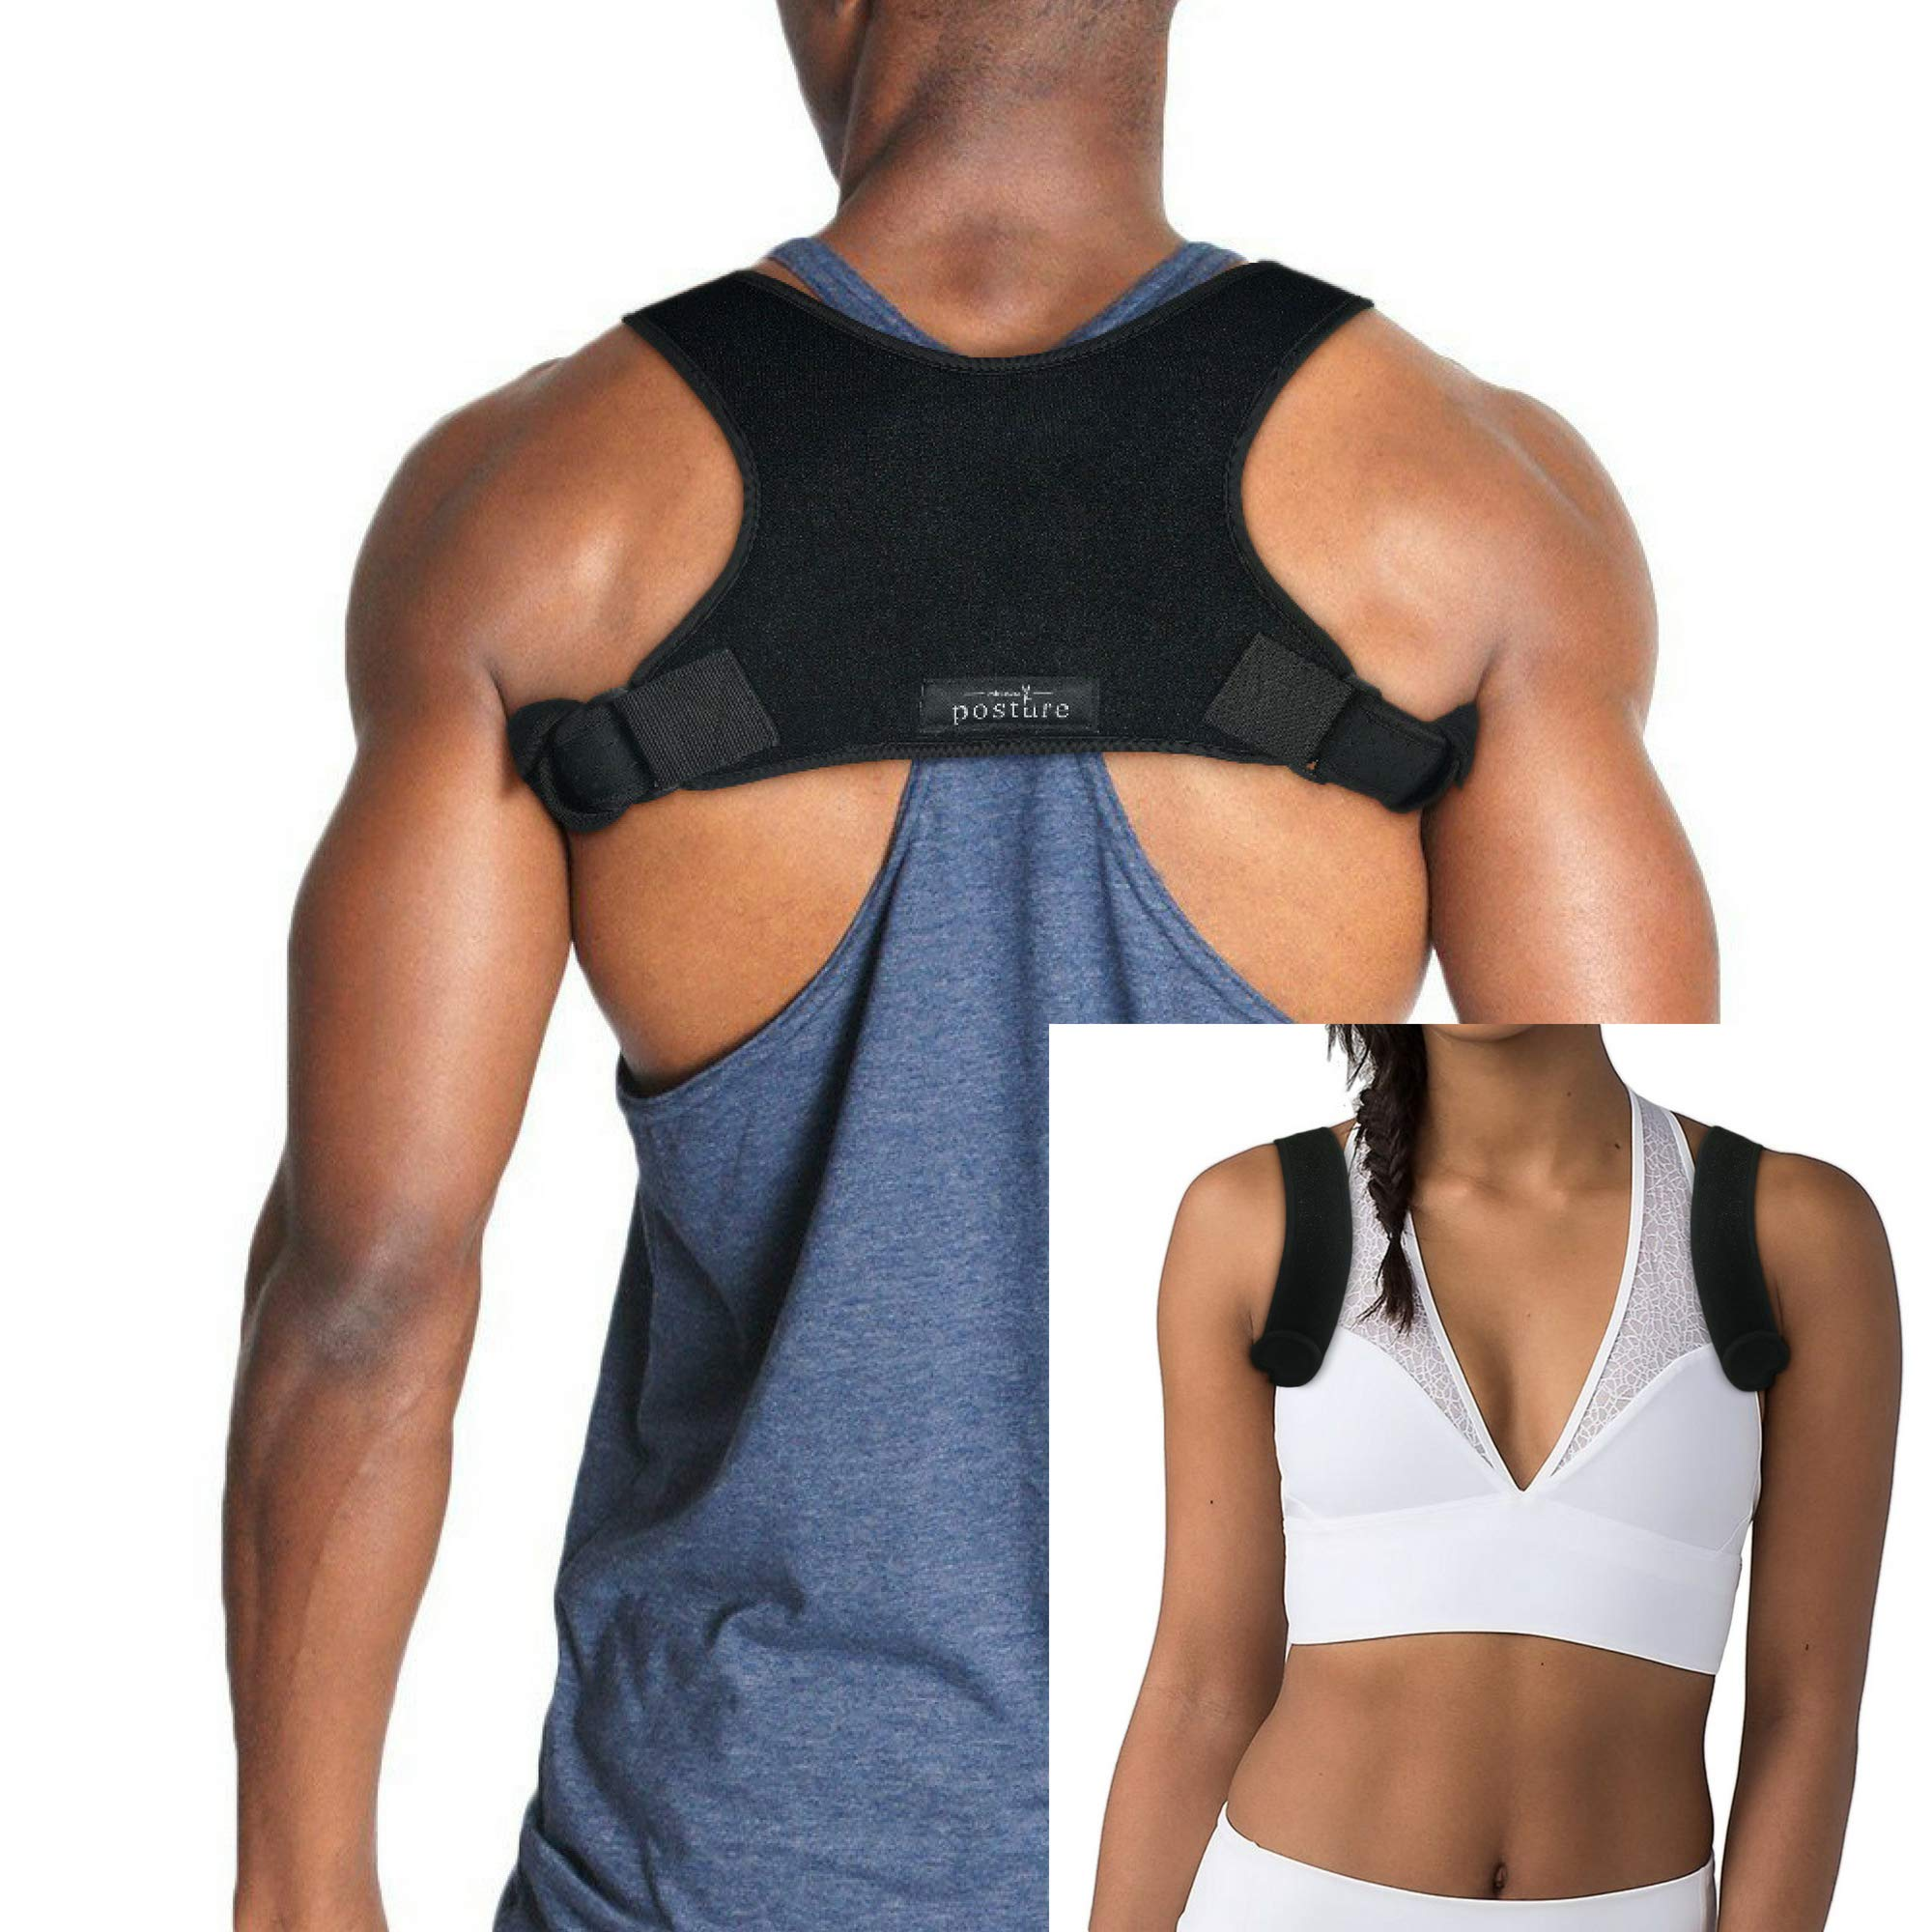 Discreet Posture Corrector Men Women That Provide Clavicle Shoulder Support, Relieve Pain, Improve Thoracic Kyphosis, Prevent Slouching | Under Clothes Upper Back Brace | Regular Size